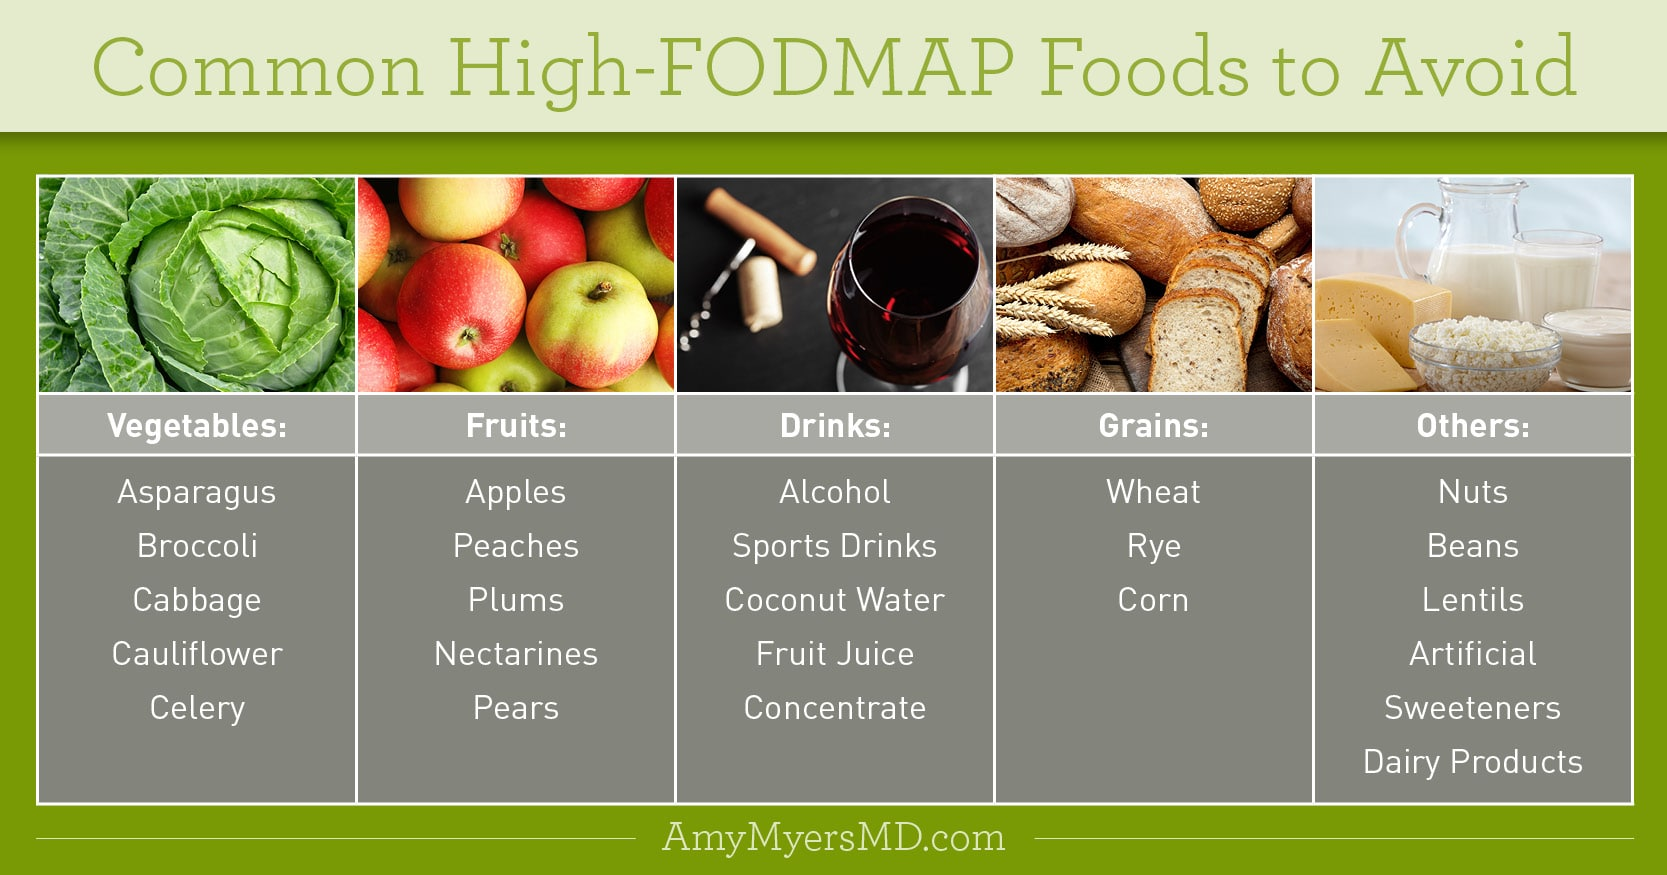 Low-FODMAP diet